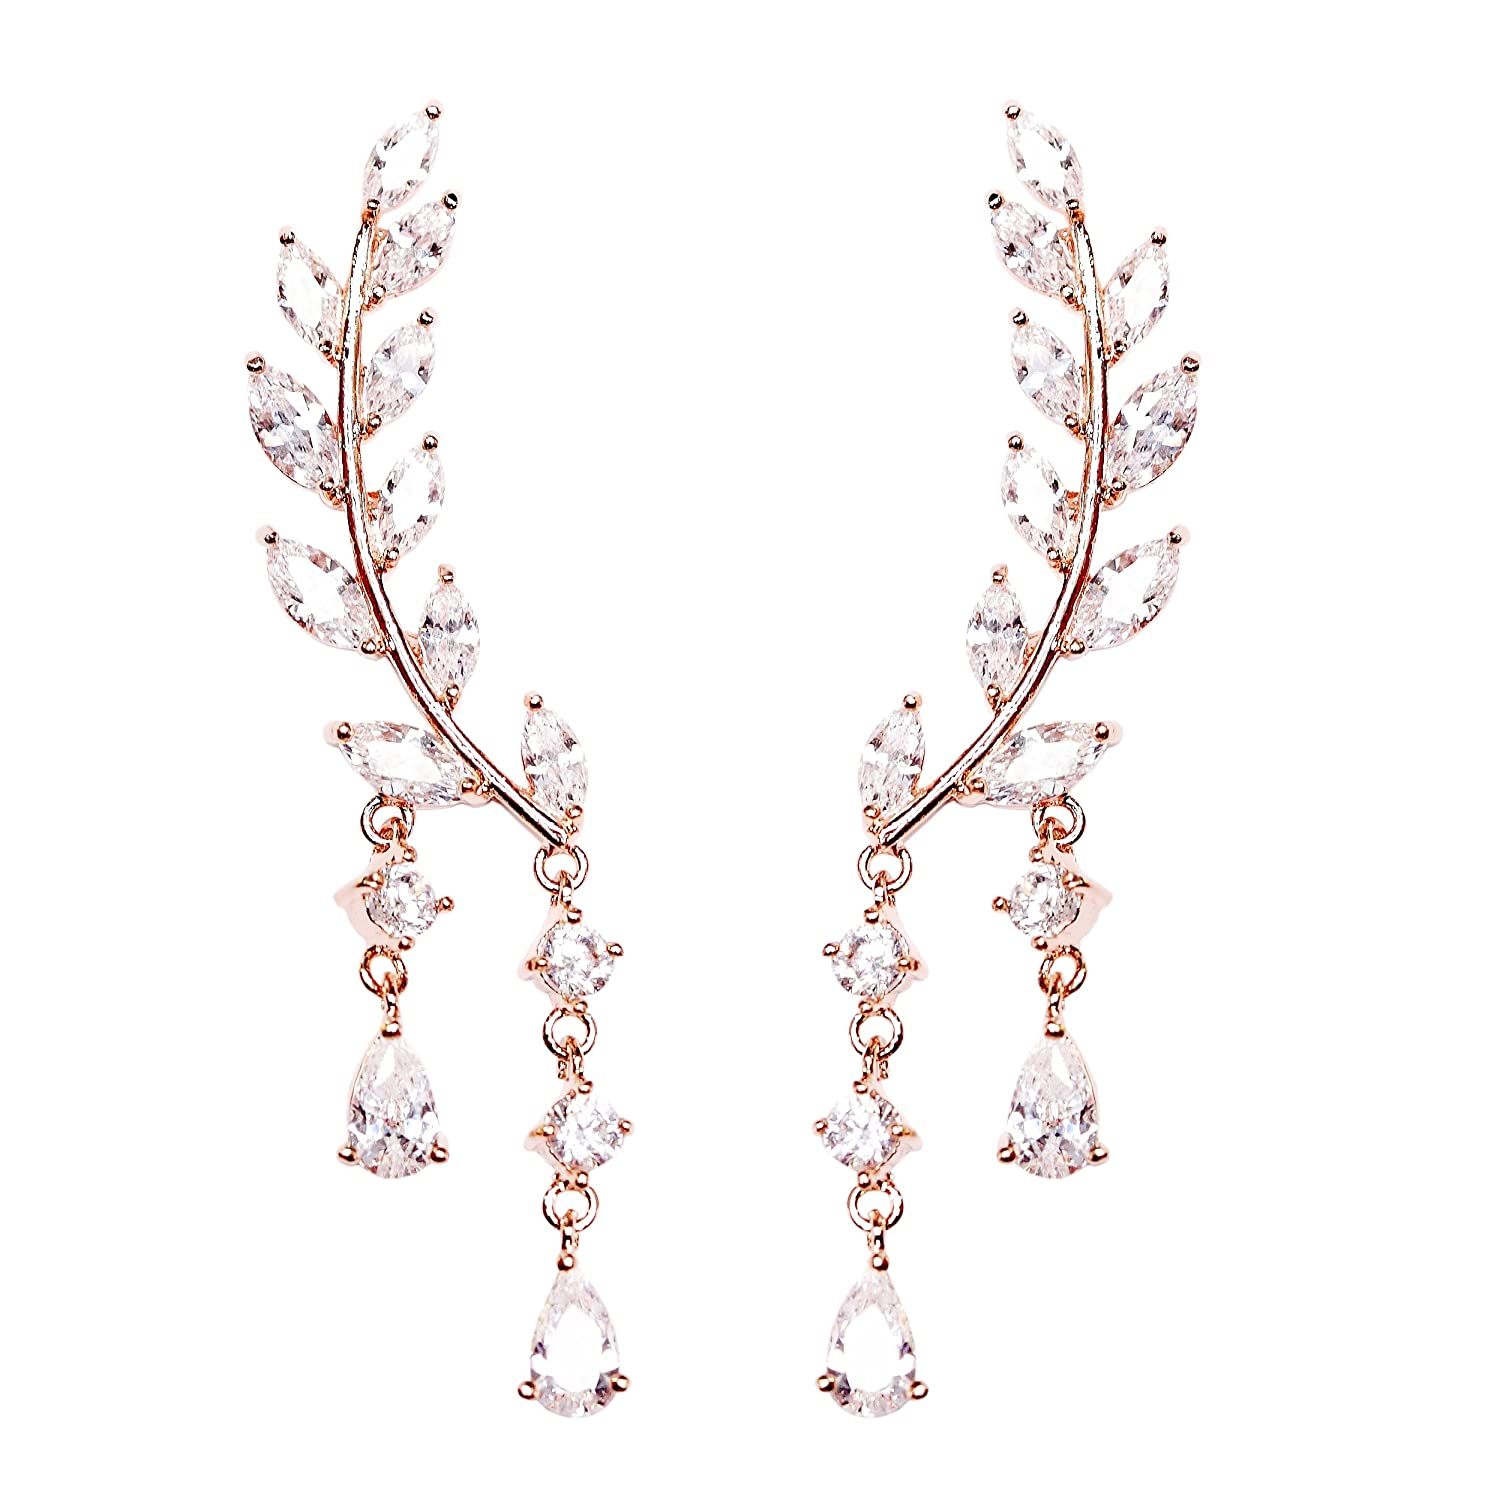 EC-025 EVERU CZ Vine Jewelry Sweep Wrap Crystal Rose Gold Plated Leaf Ear Cuffs Set Stud Earrings for Women Everu Comp